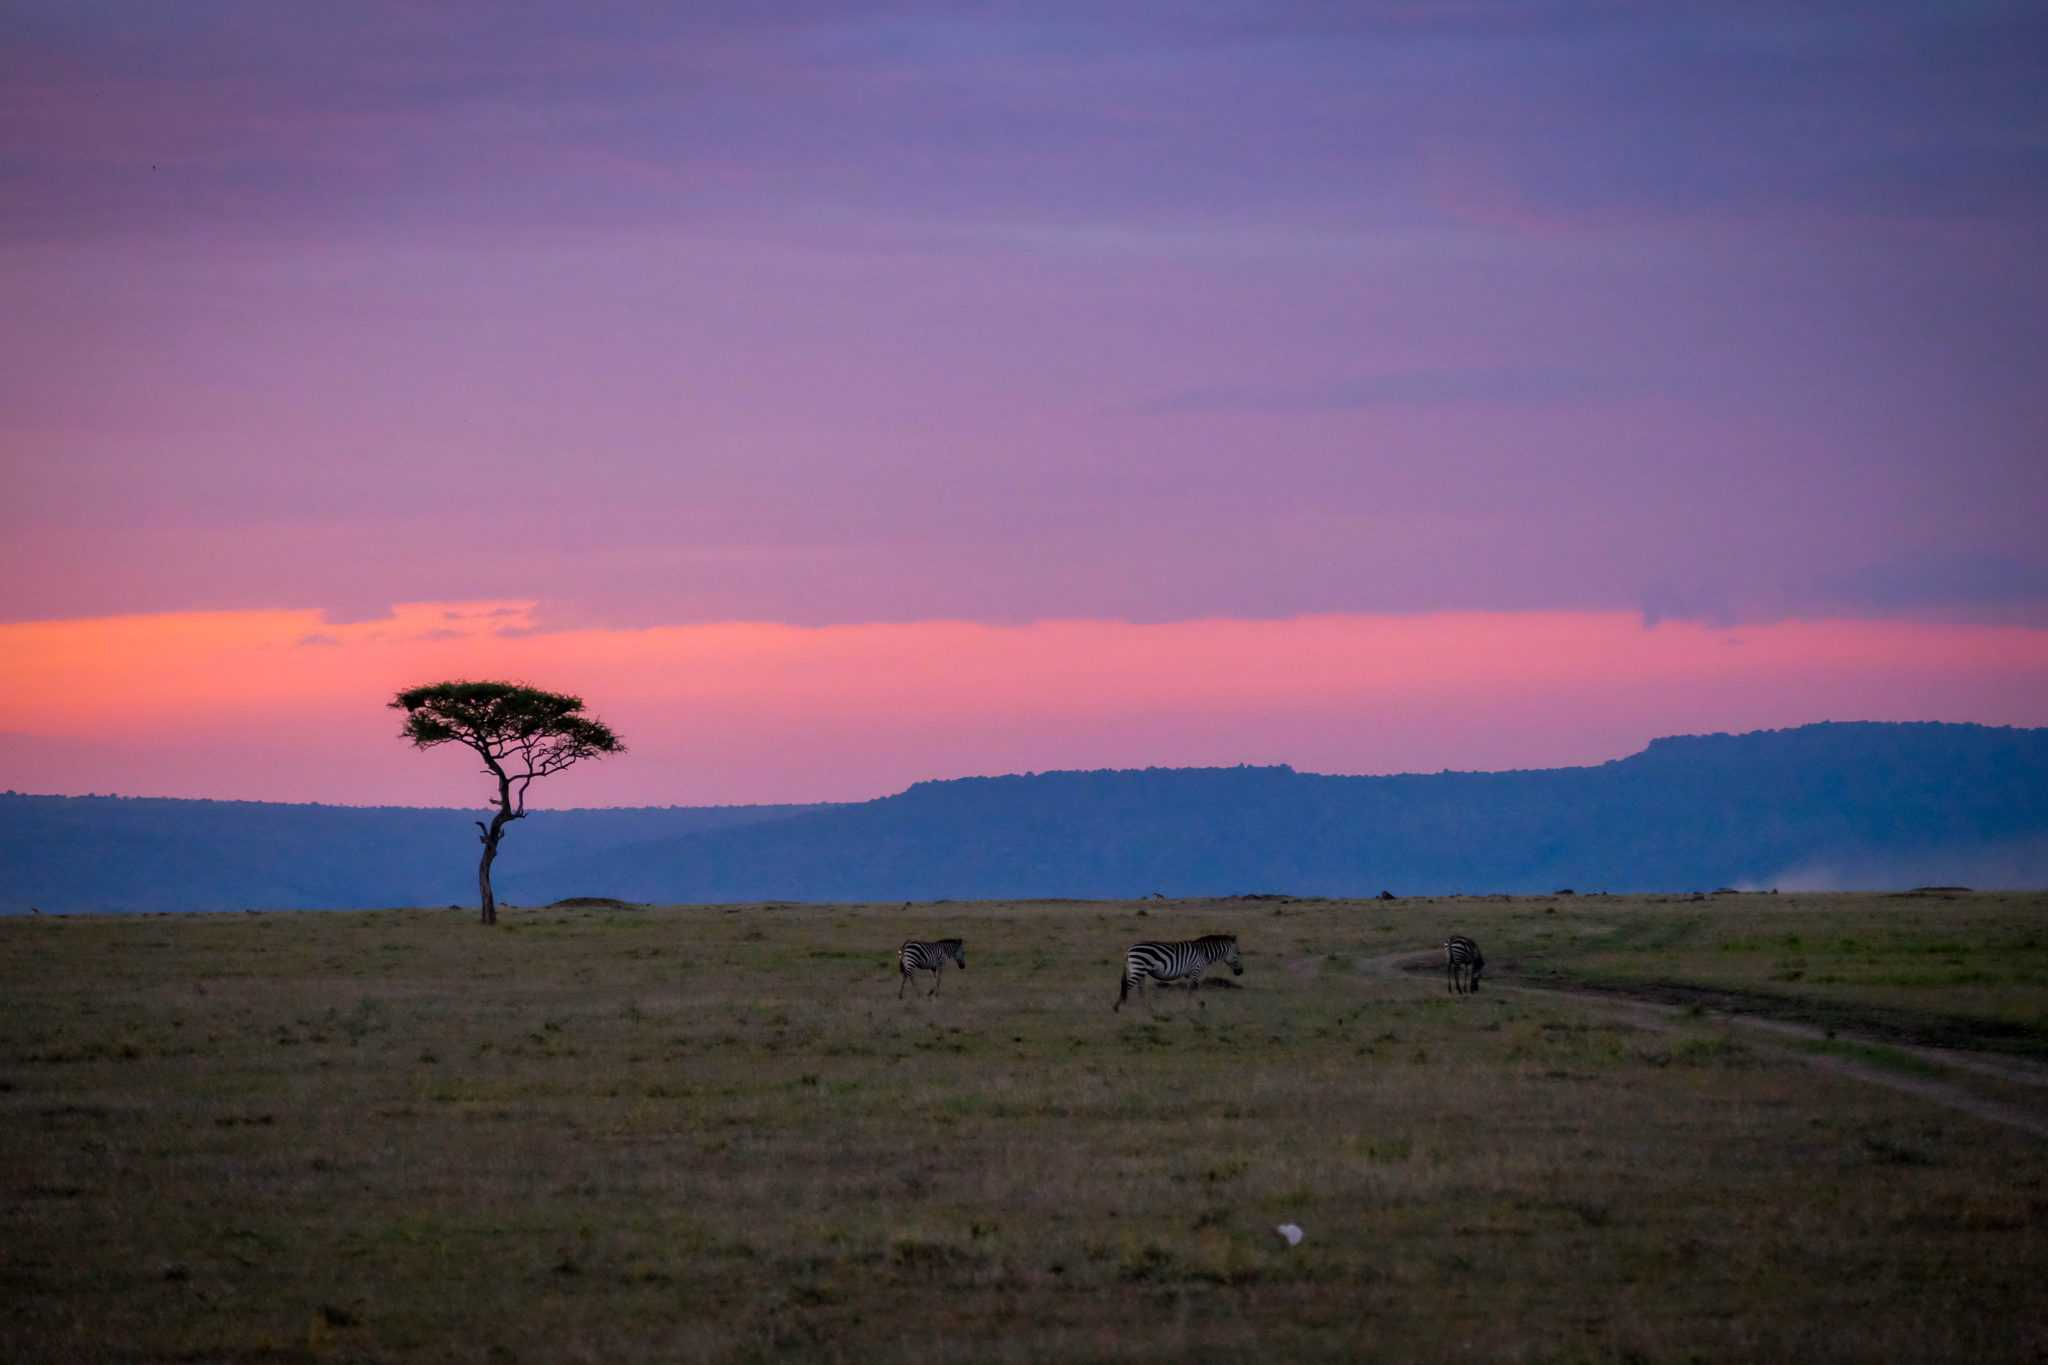 Sunsets in Kenya